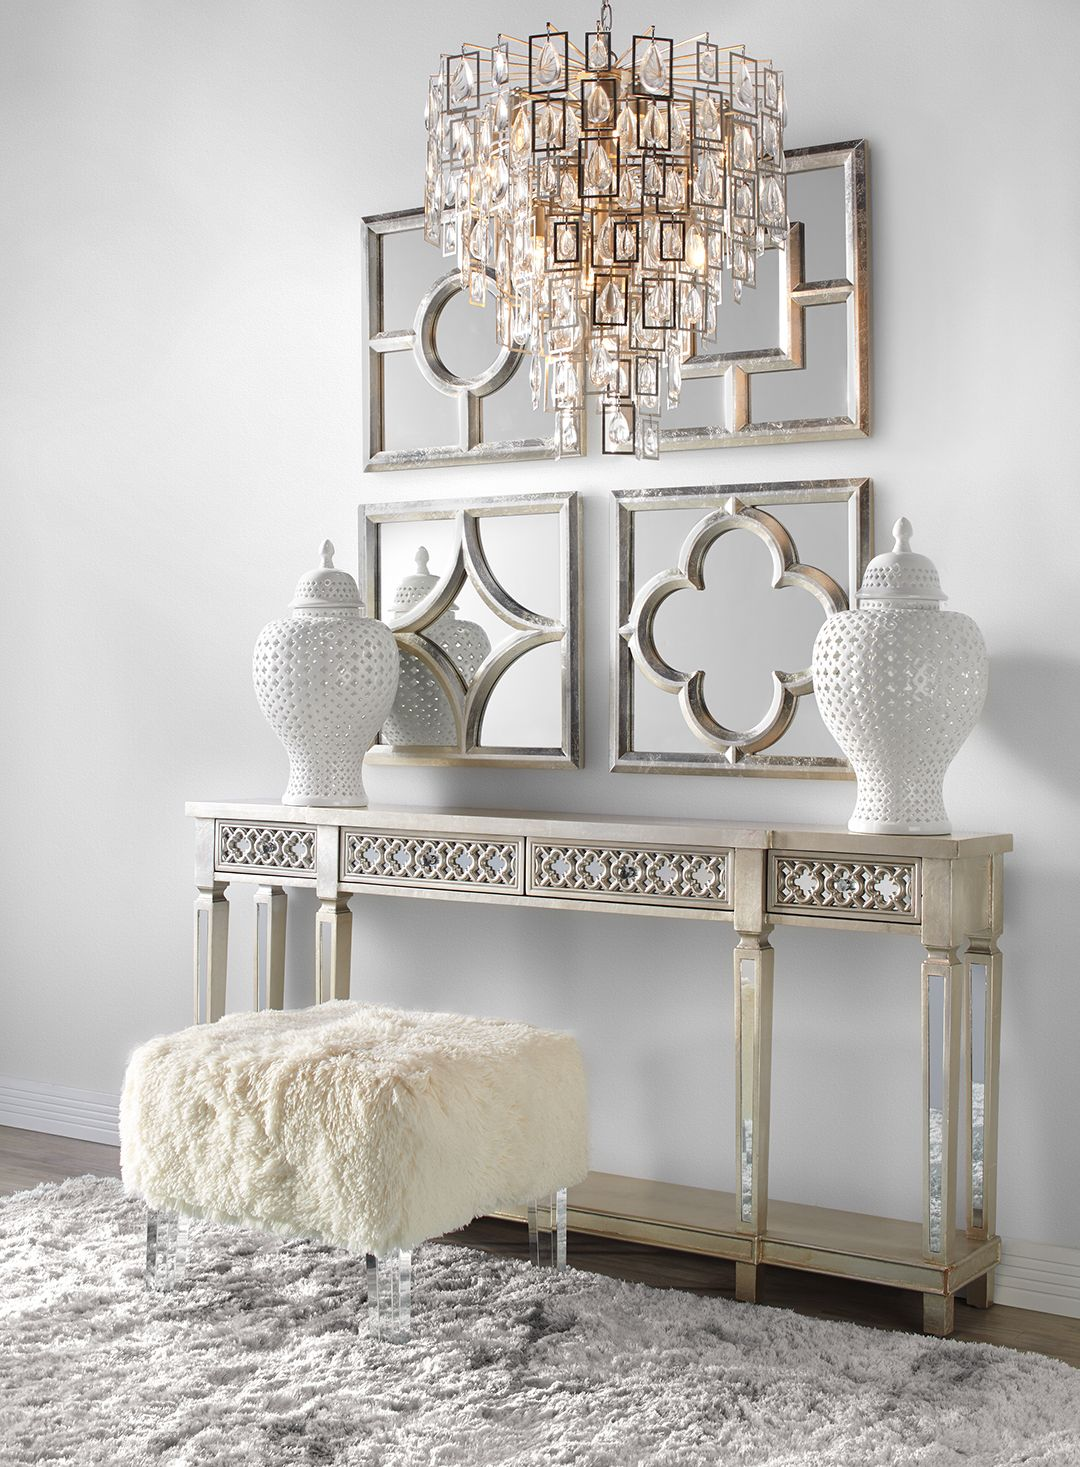 console tables console tables Amazing Console Tables With Detailed Design 5 Amazing Console Tables With Detailed Design